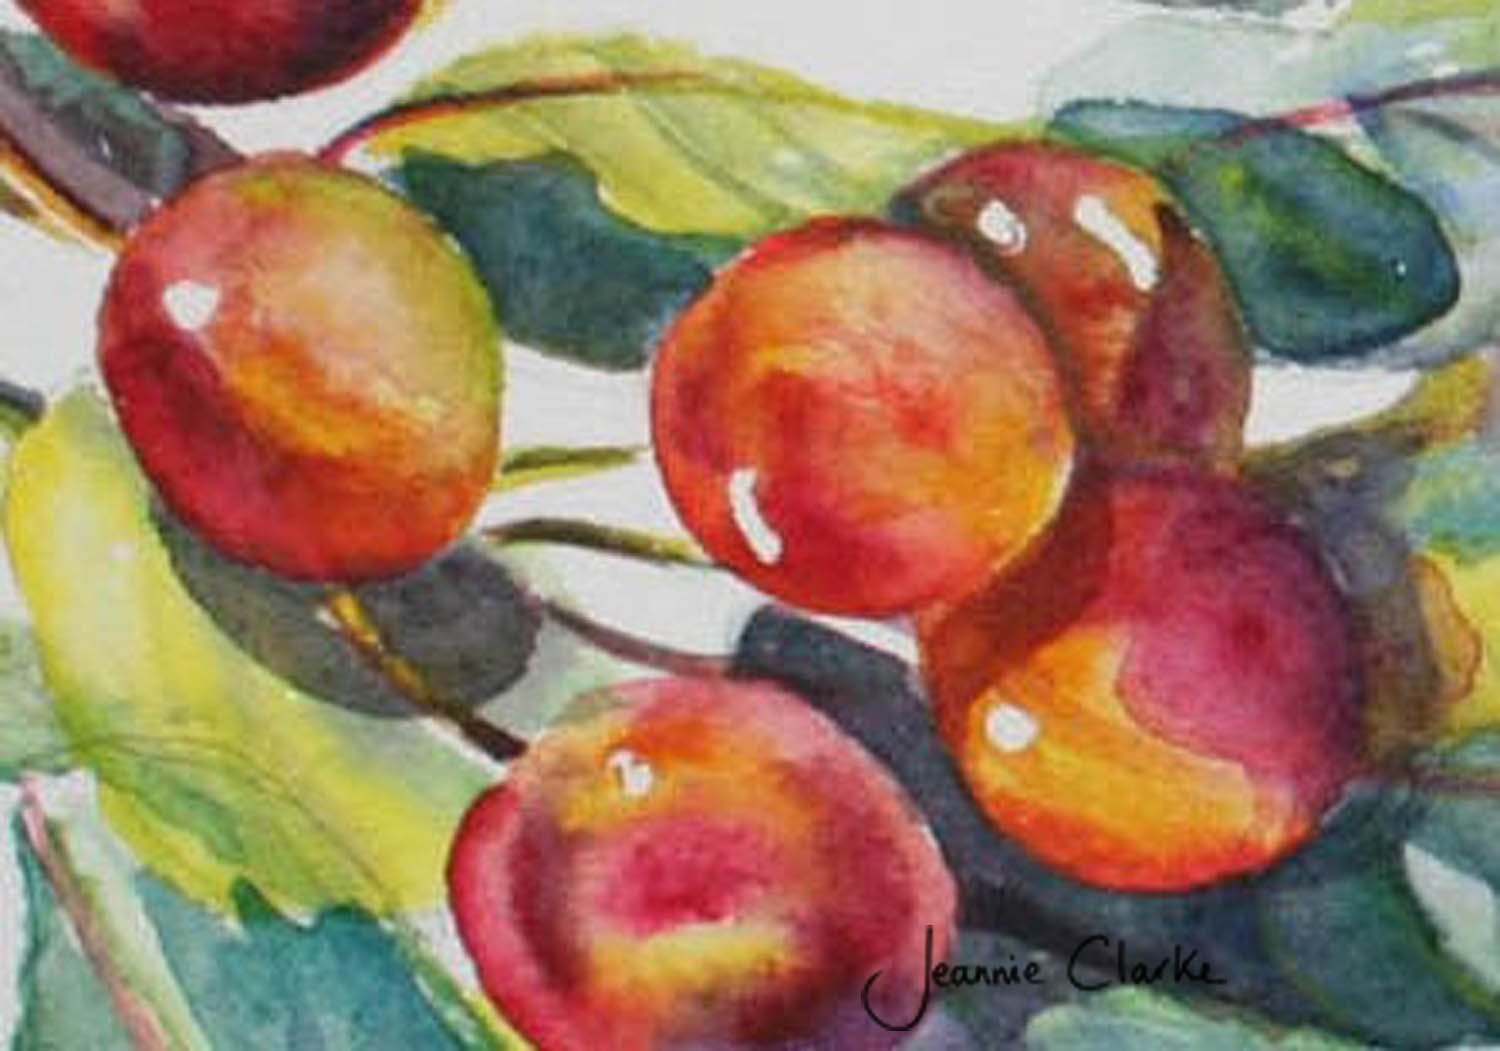 3 cherries. wmkd, cropped